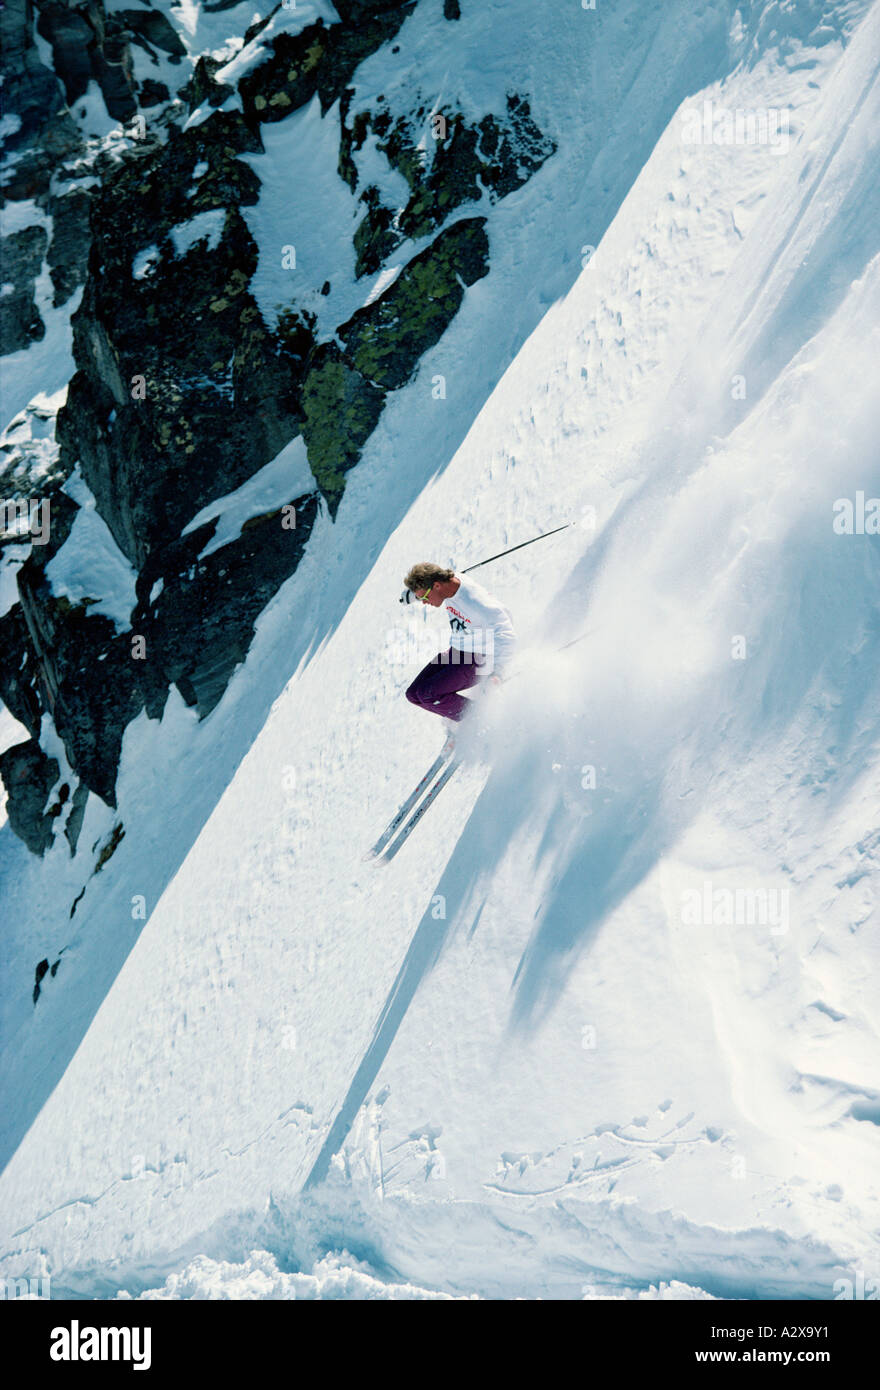 Young man downhill skiing. Stock Photo